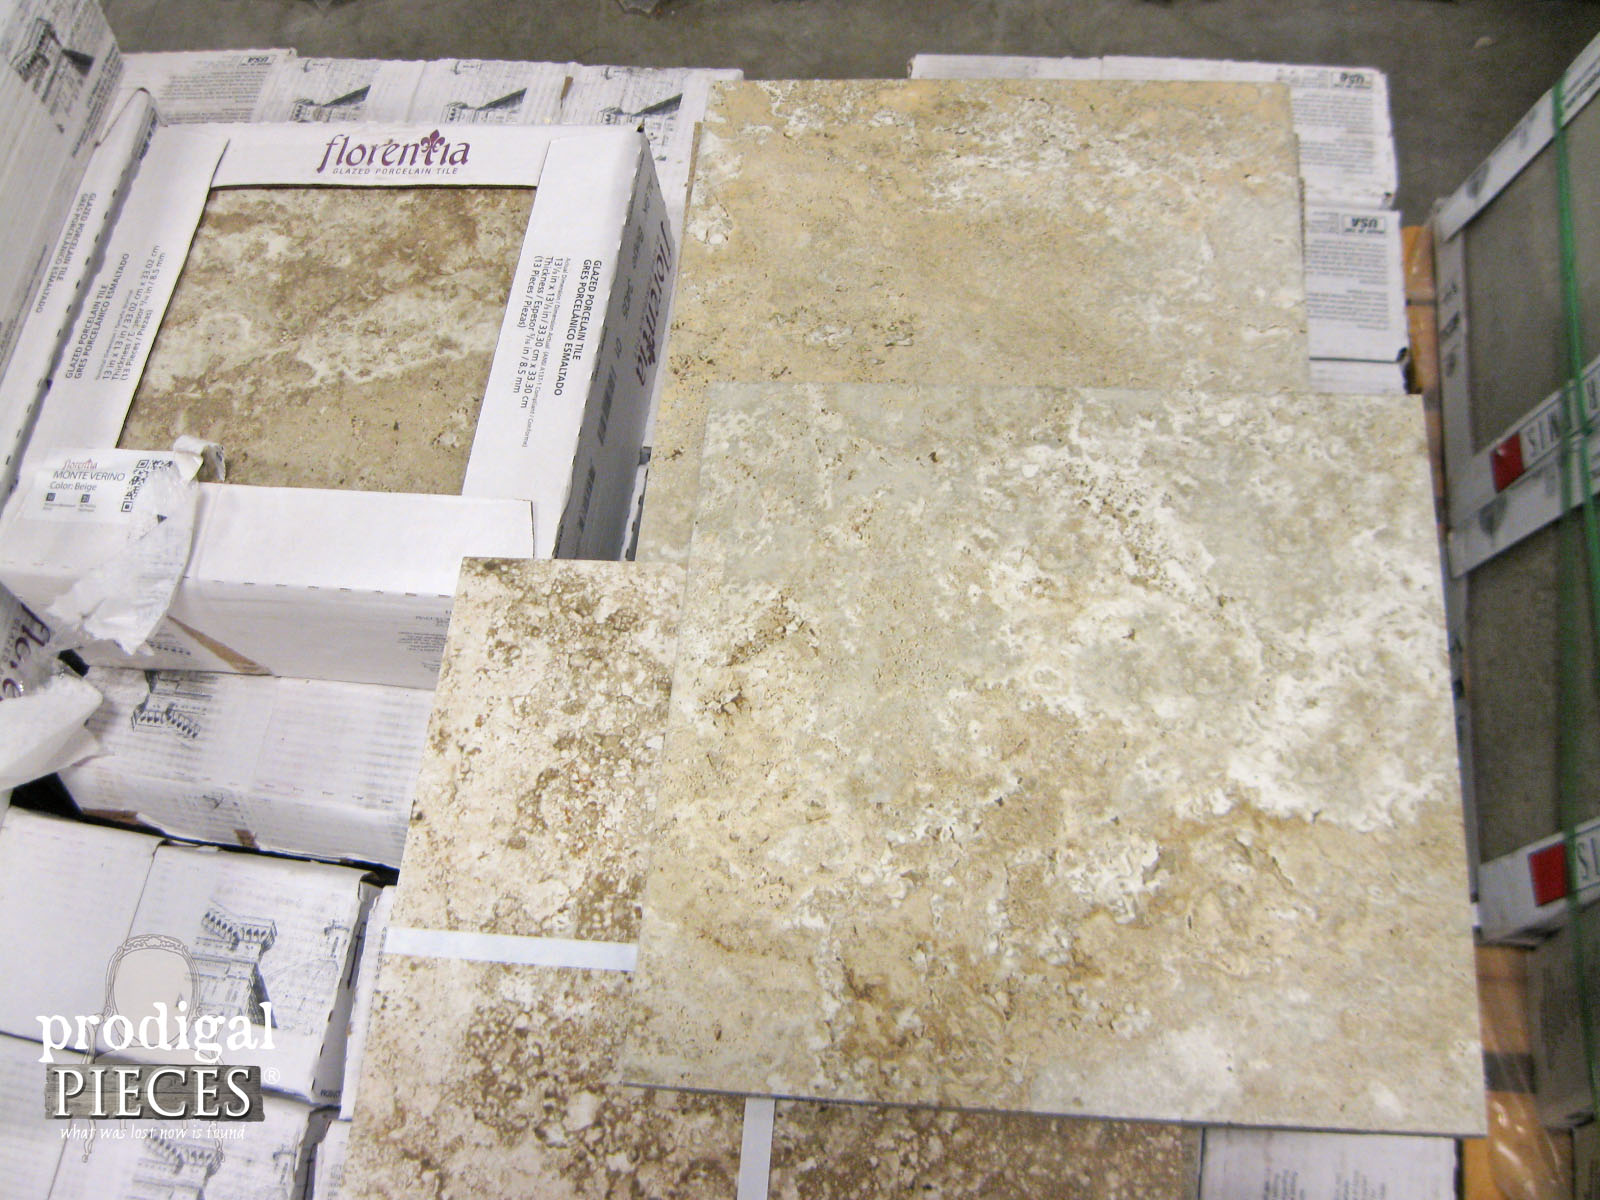 Stone Look Porcelain Tile | Prodigal Pieces | www.prodigalpieces.com